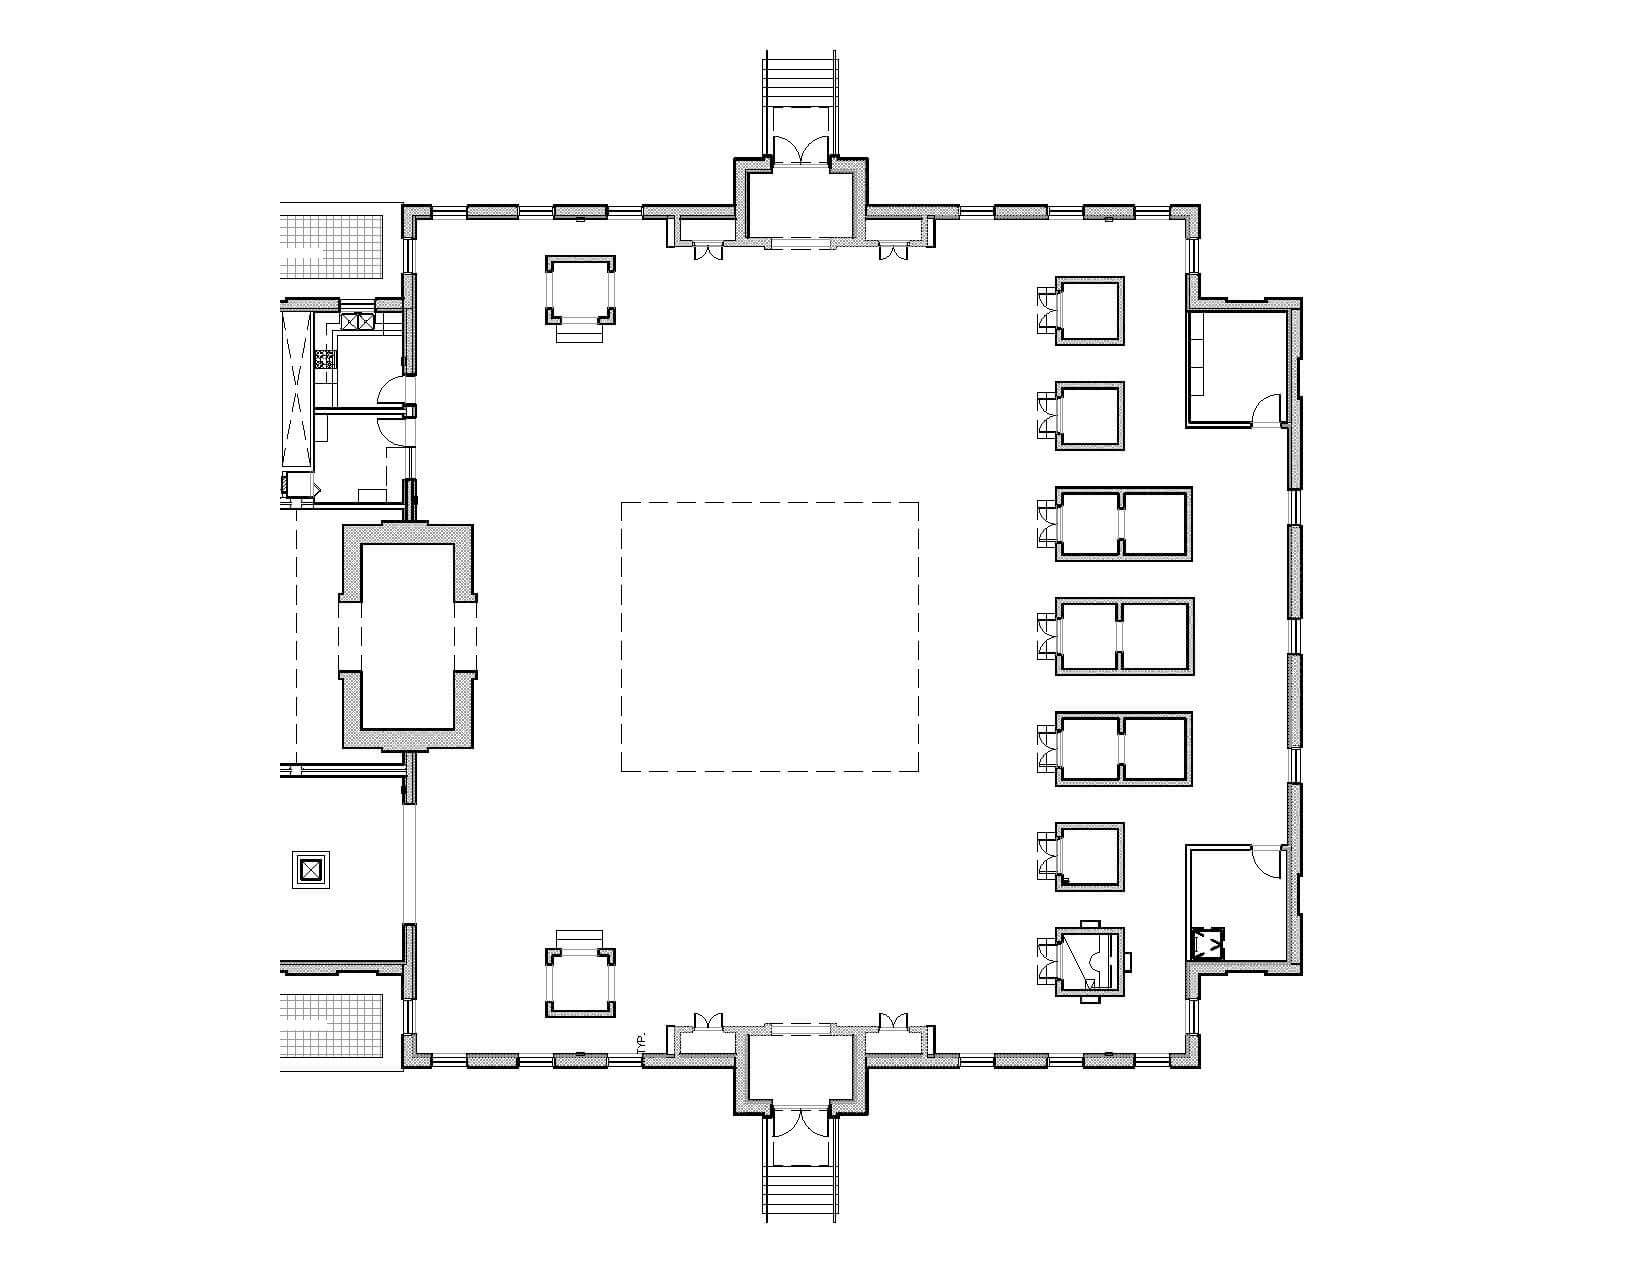 32-Partial-plan-shown-for-Hindu-Temple-modified-to-suit-the-modern-needs-of-today_s-society.jpg